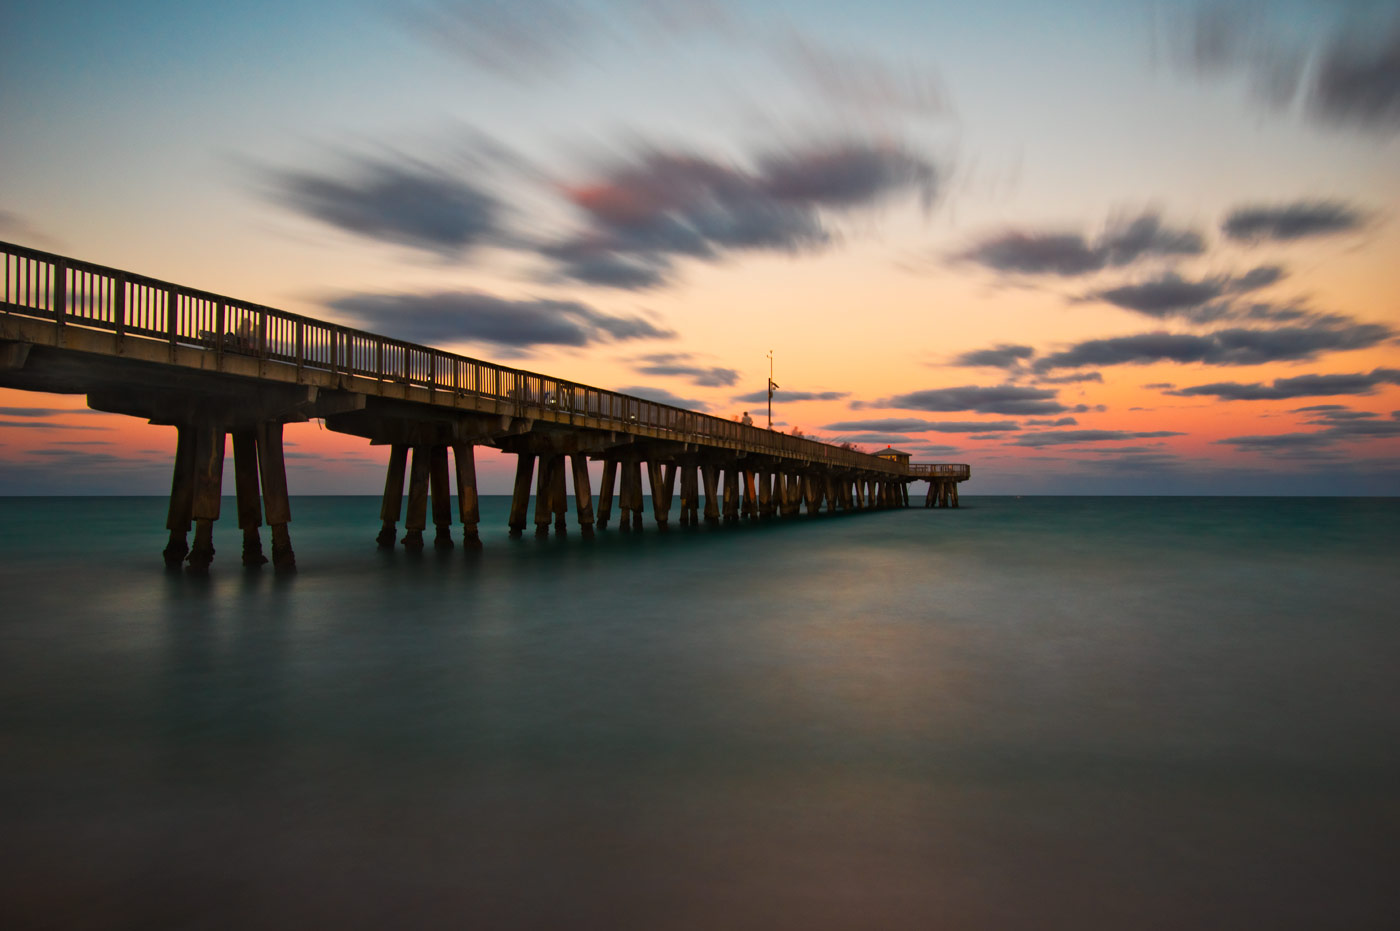 HOW TO PHOTOGRAPH THE SUNSET: 7 TIPS FOR INCREDIBLE SUNSET PHOTOS